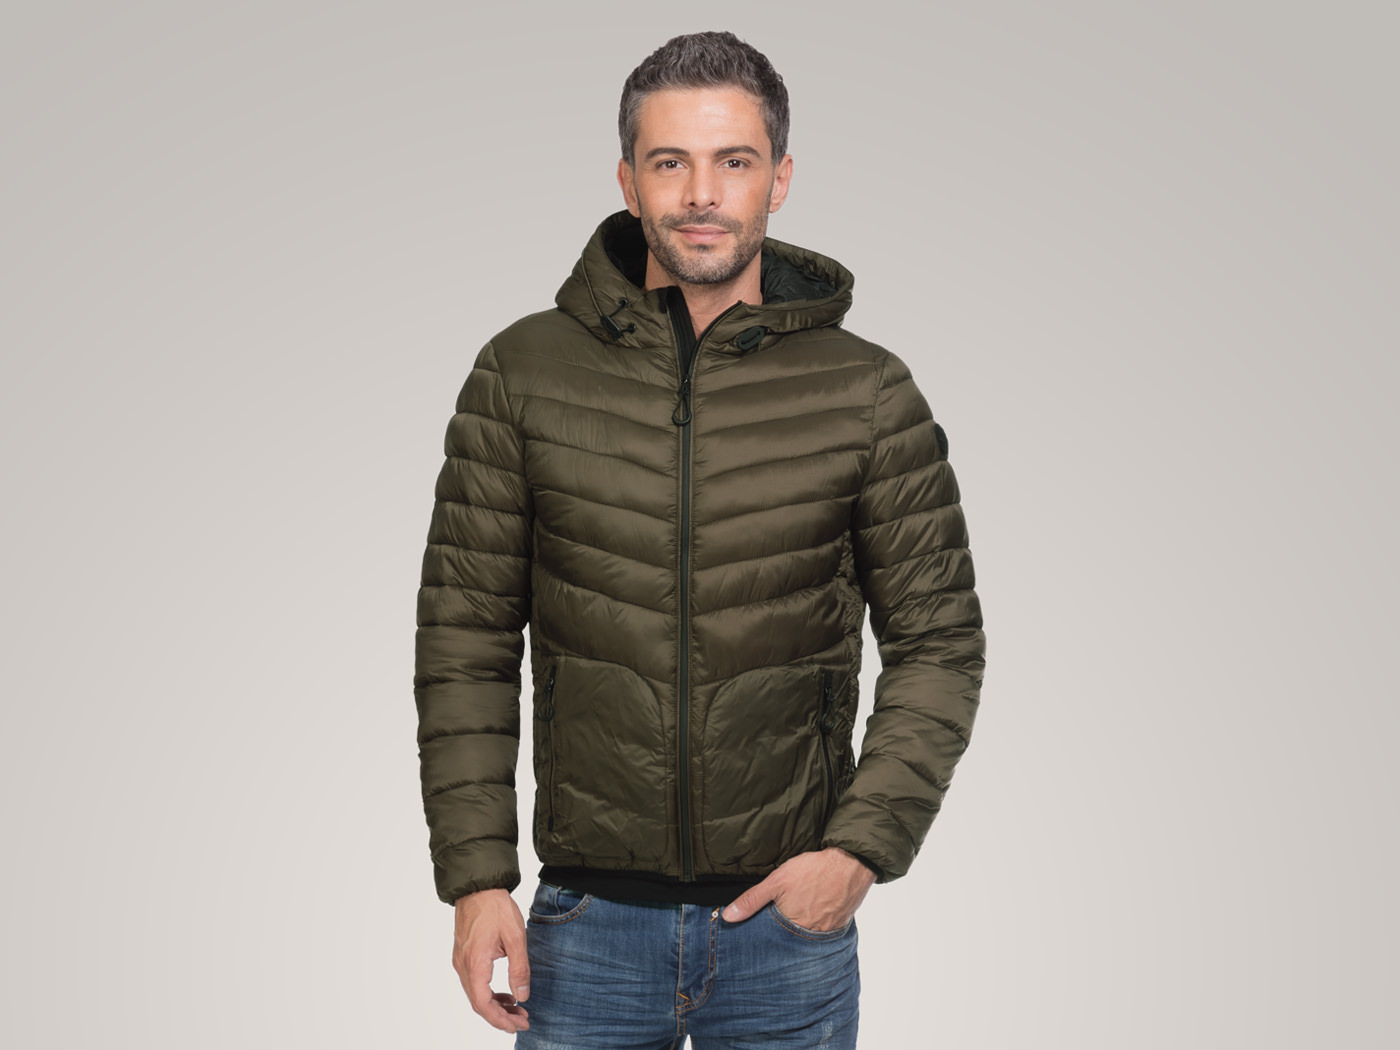 Padded Jacket in soft nylon fabric with hood